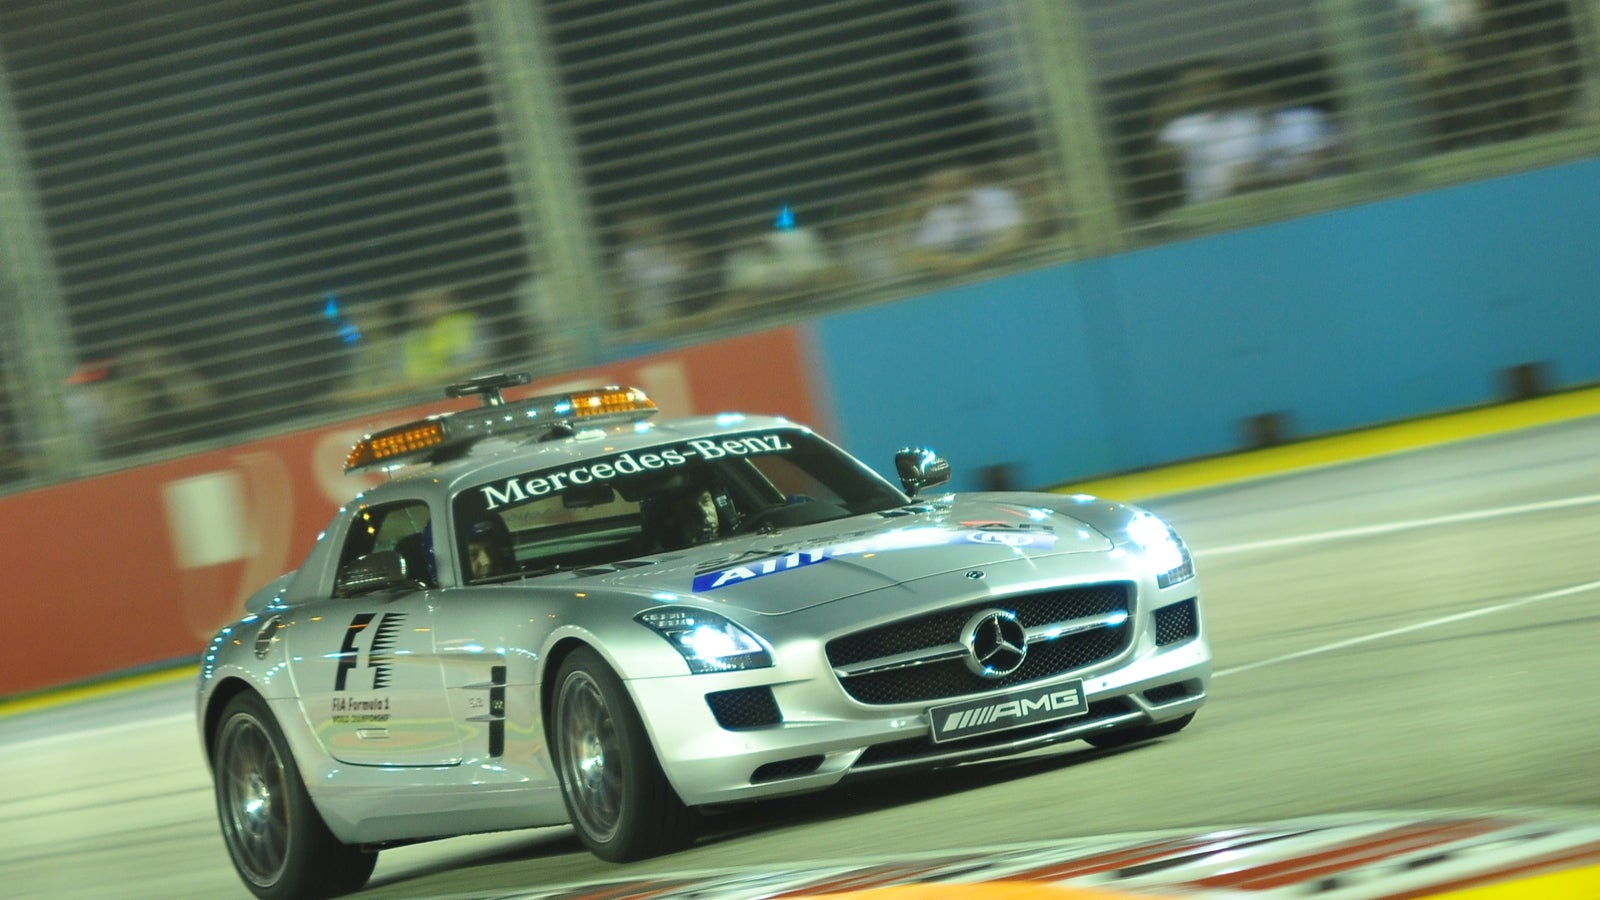 Ridiculously awesome mercedes sls amg f1 safety car wallpaper is here